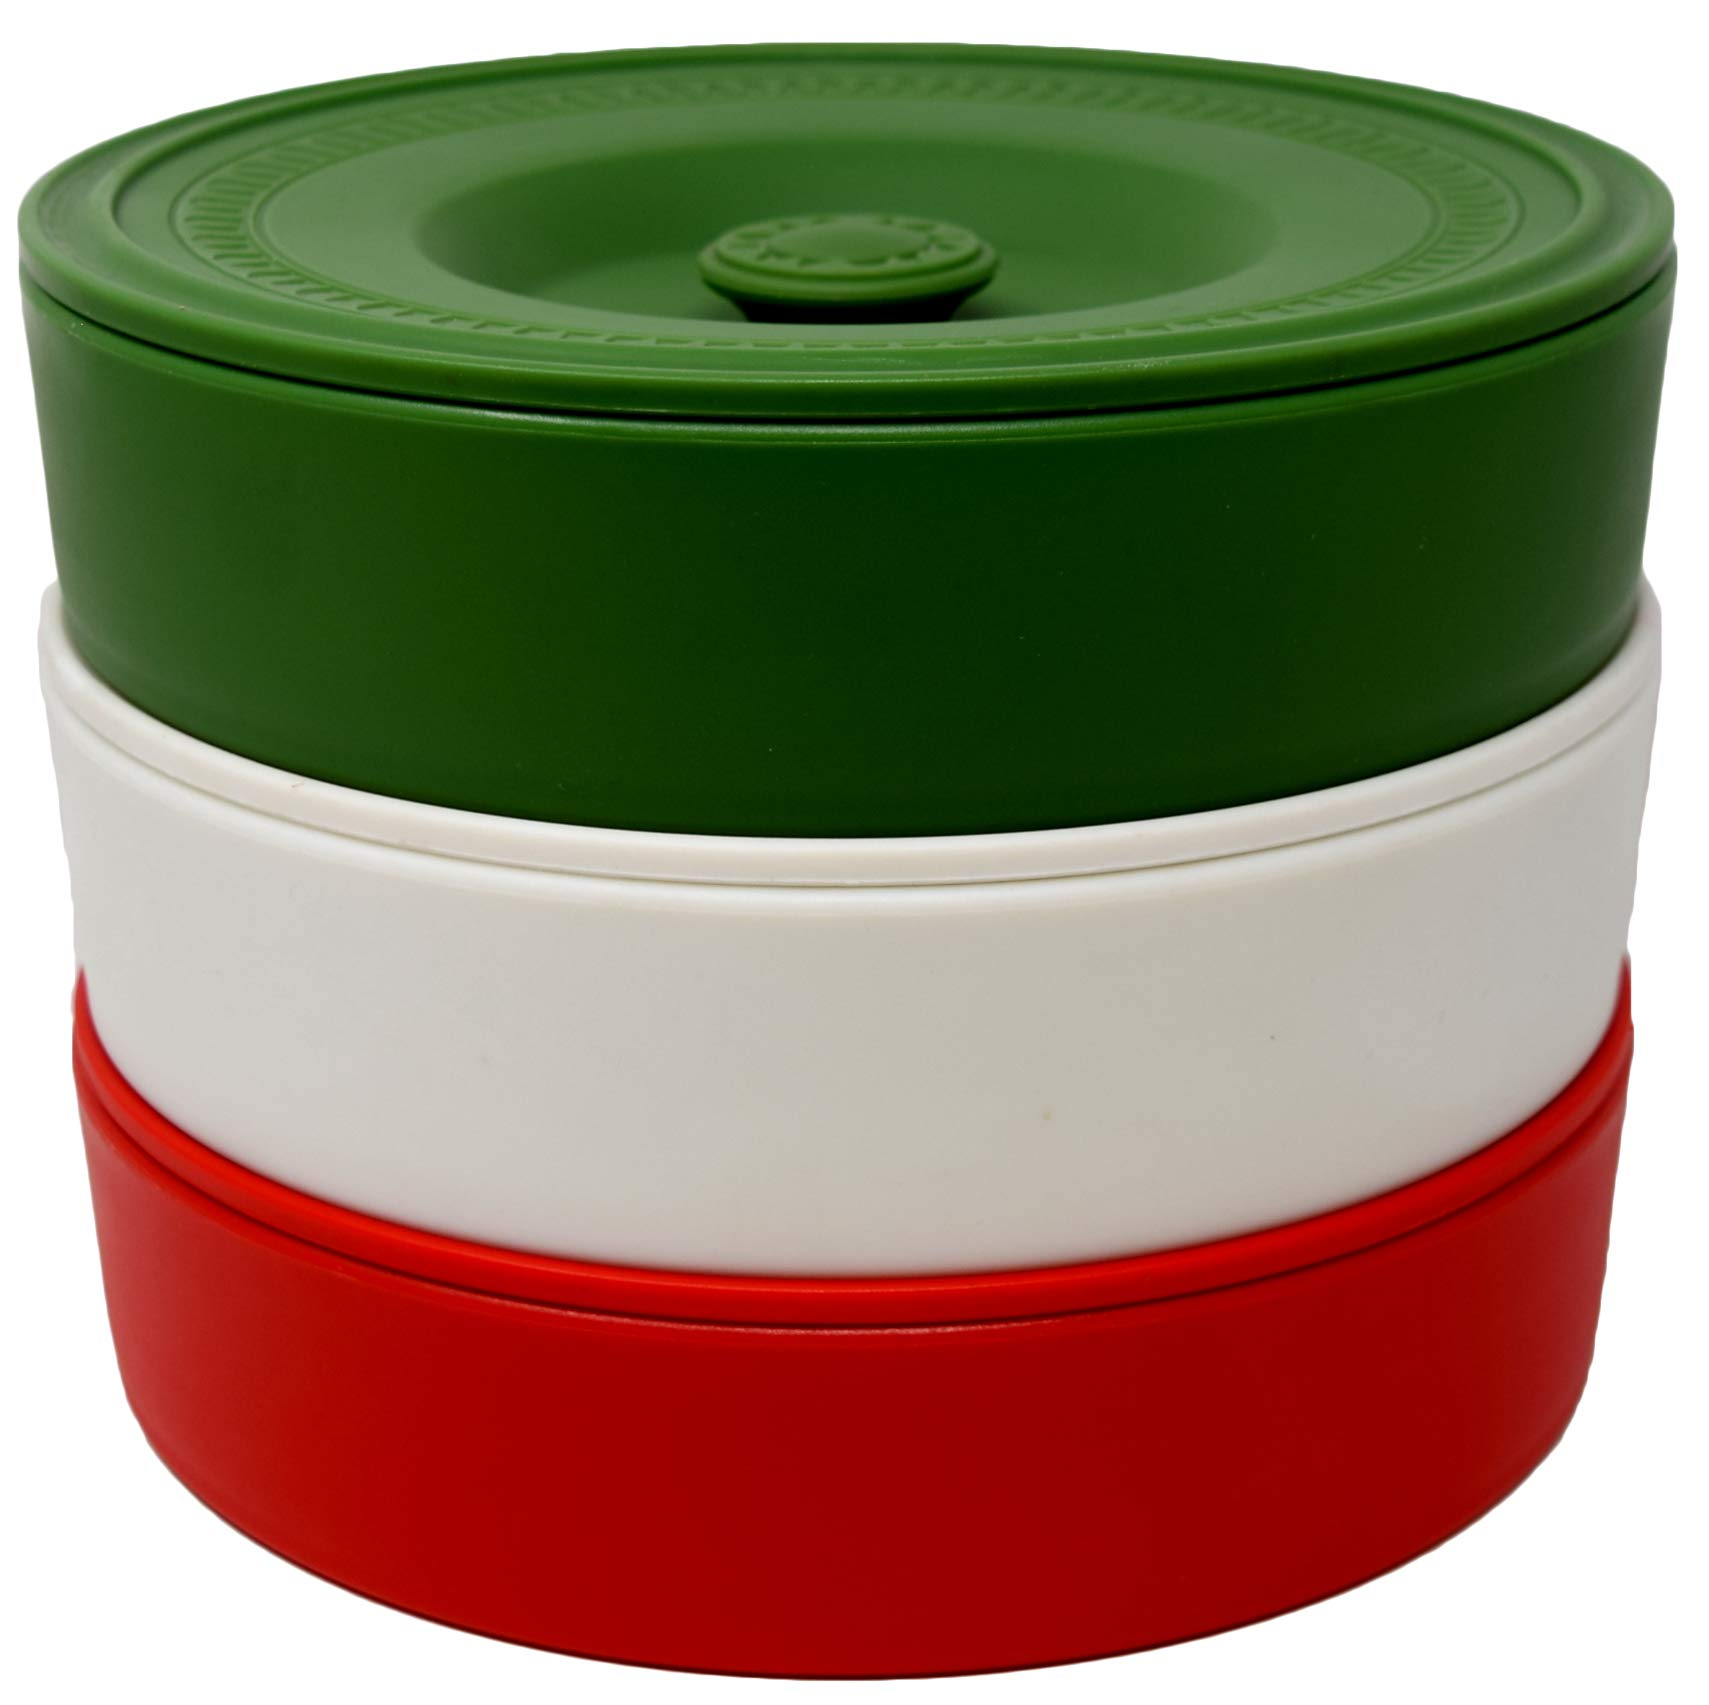 Fiesta Tortilla Warmers 3 pack - 8 Inch Tortilla Warmer/Tortilla Holder - Green, White, Red